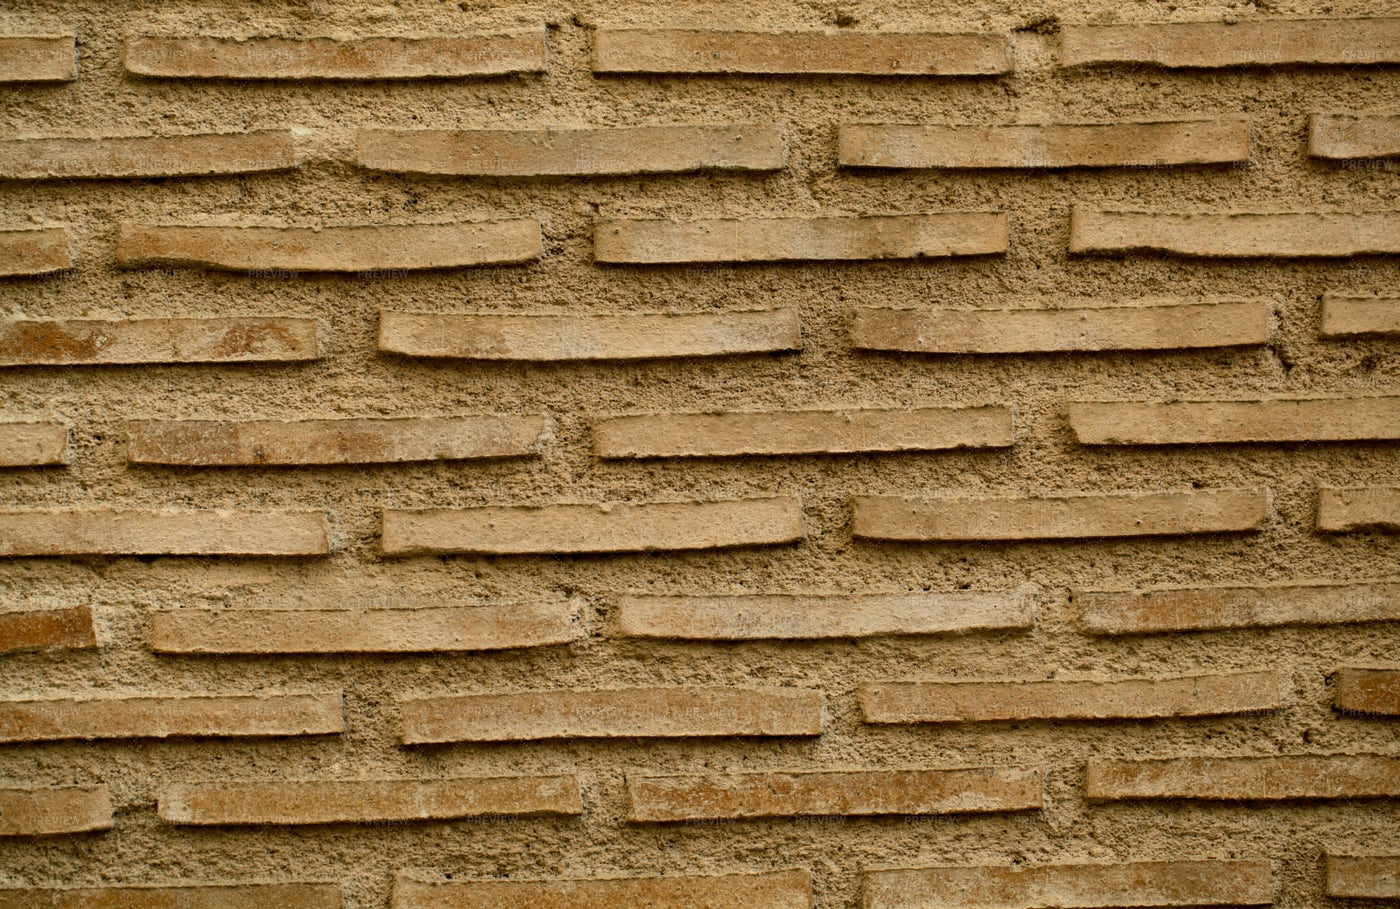 Old Brick Wall Background Texture: Stock Photos